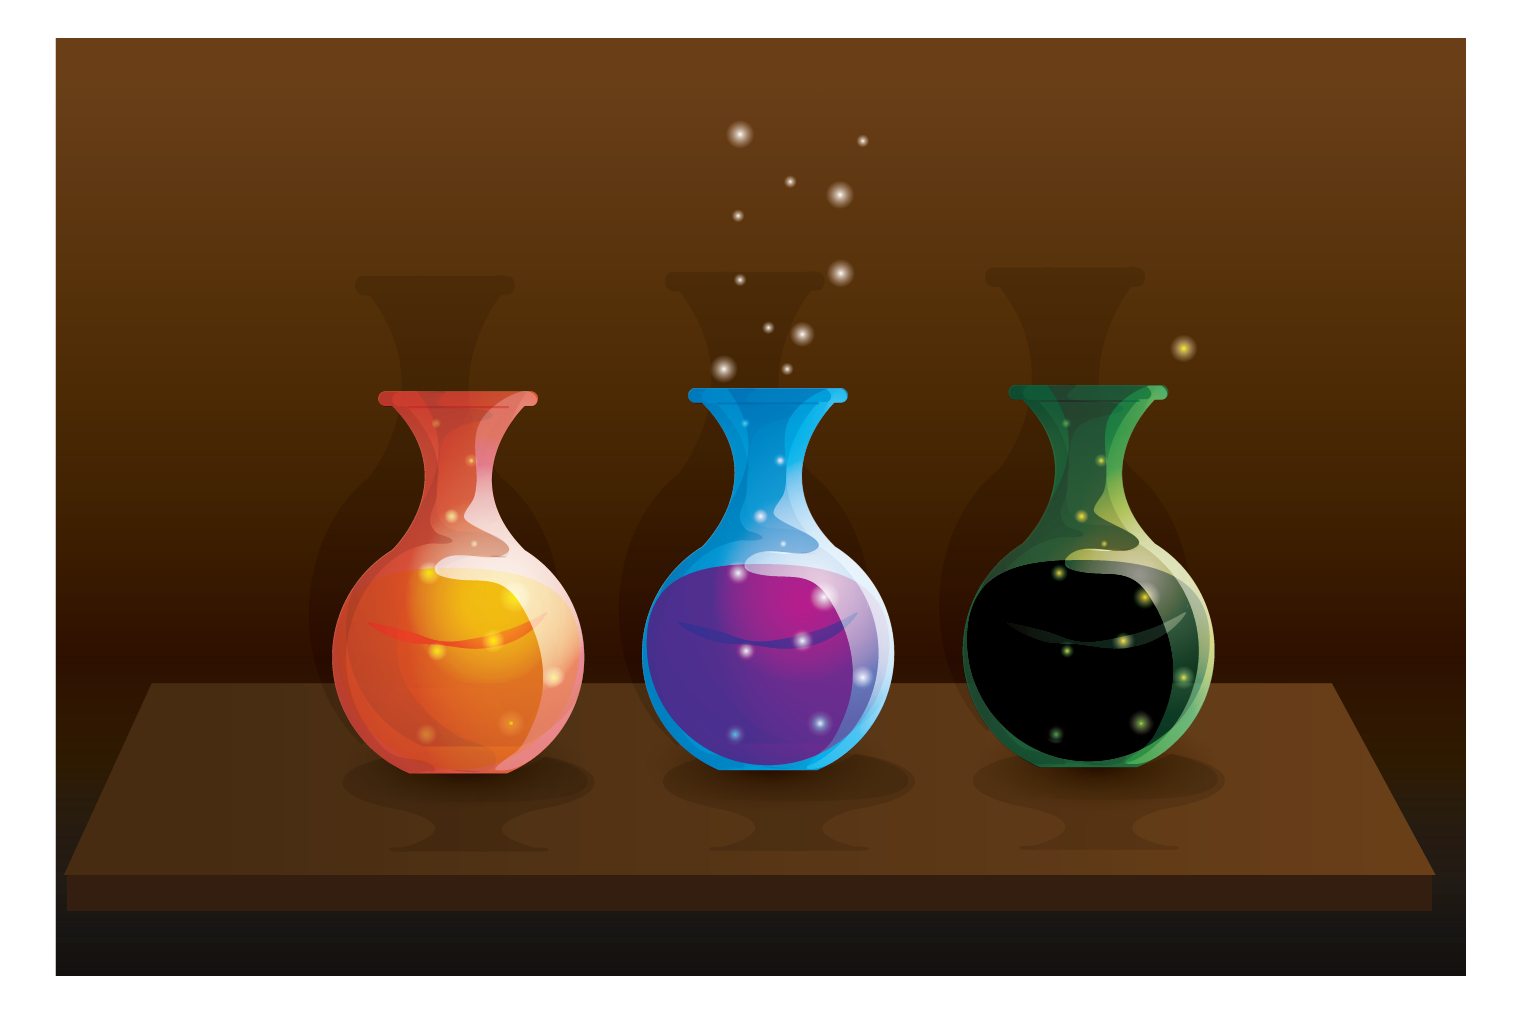 2013-04-15+17_02_55-Potions.ai_+@+400%+(CMYK_Preview).png